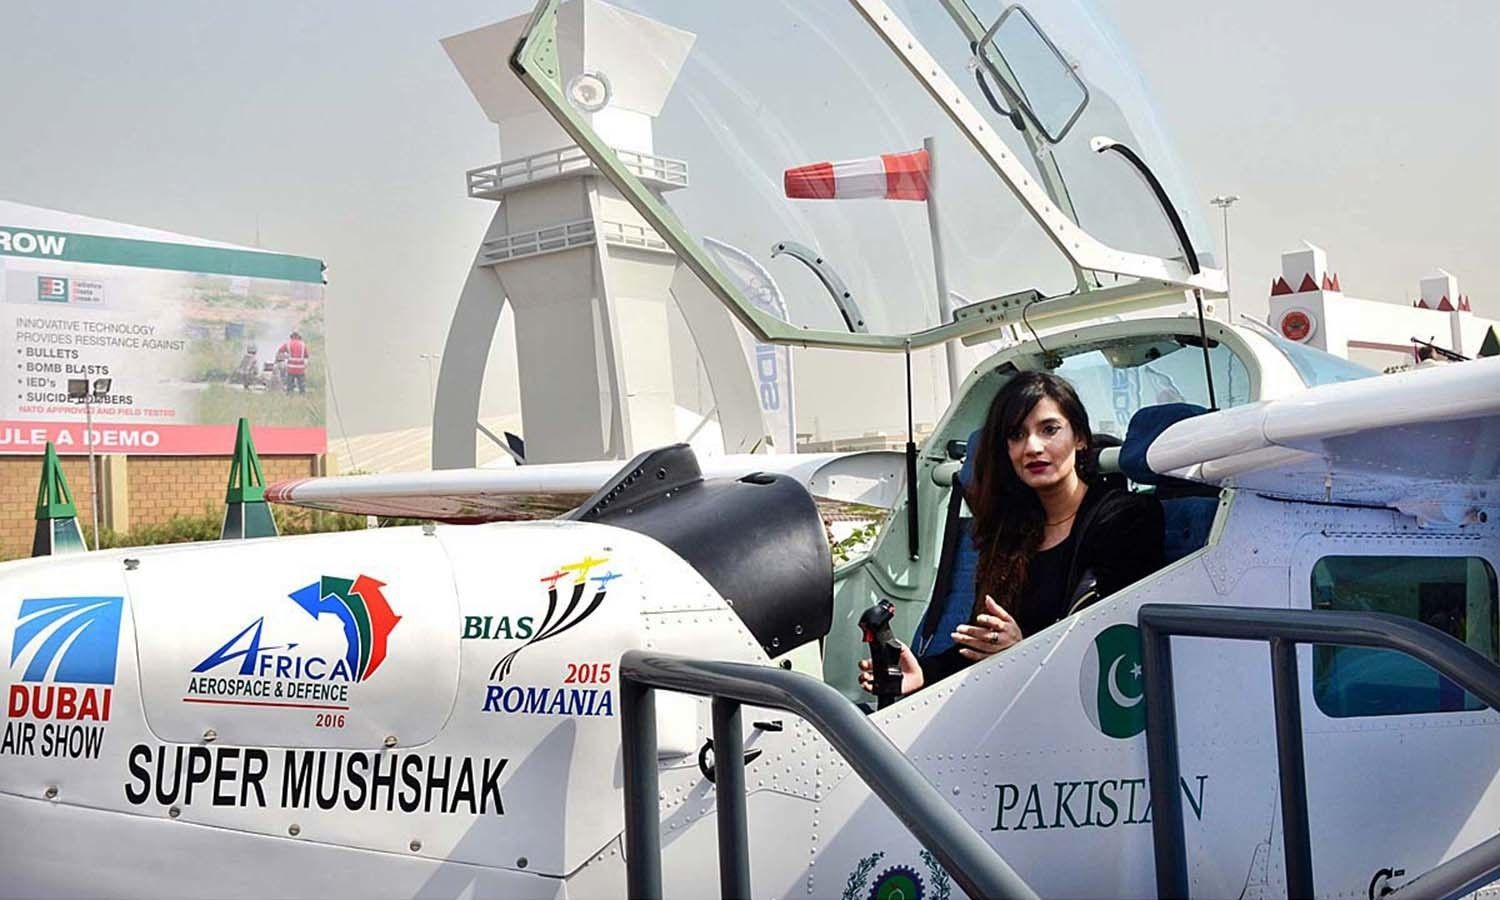 A woman sitting in the cockpit of Super Mushshak aircraft